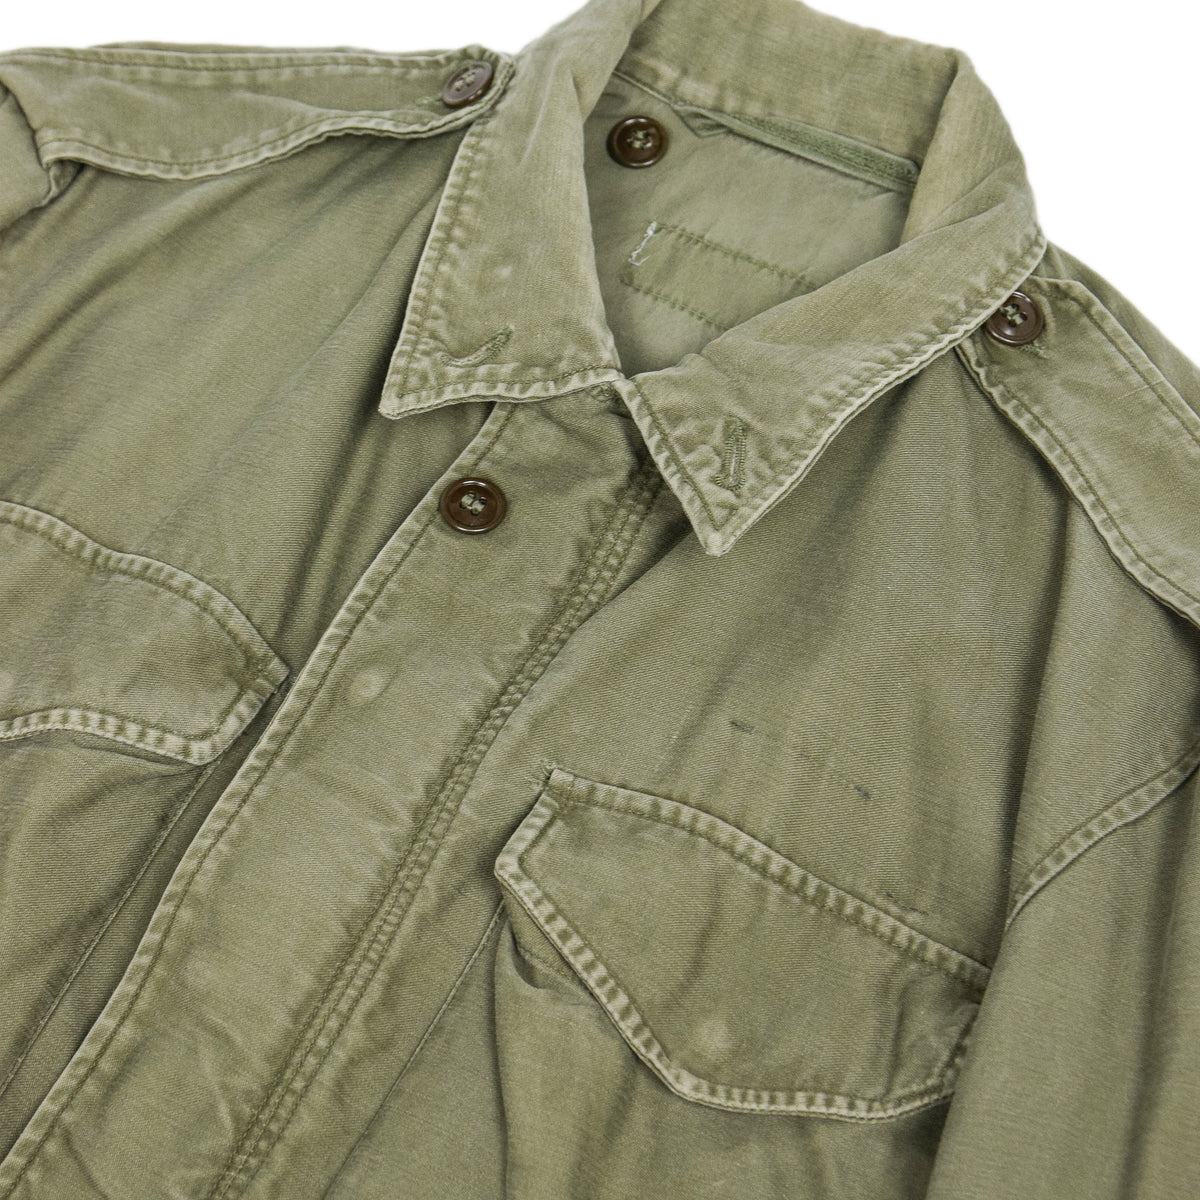 Vintage 50s M-1951 Korean War US Army Field Jacket Olive Green M chest